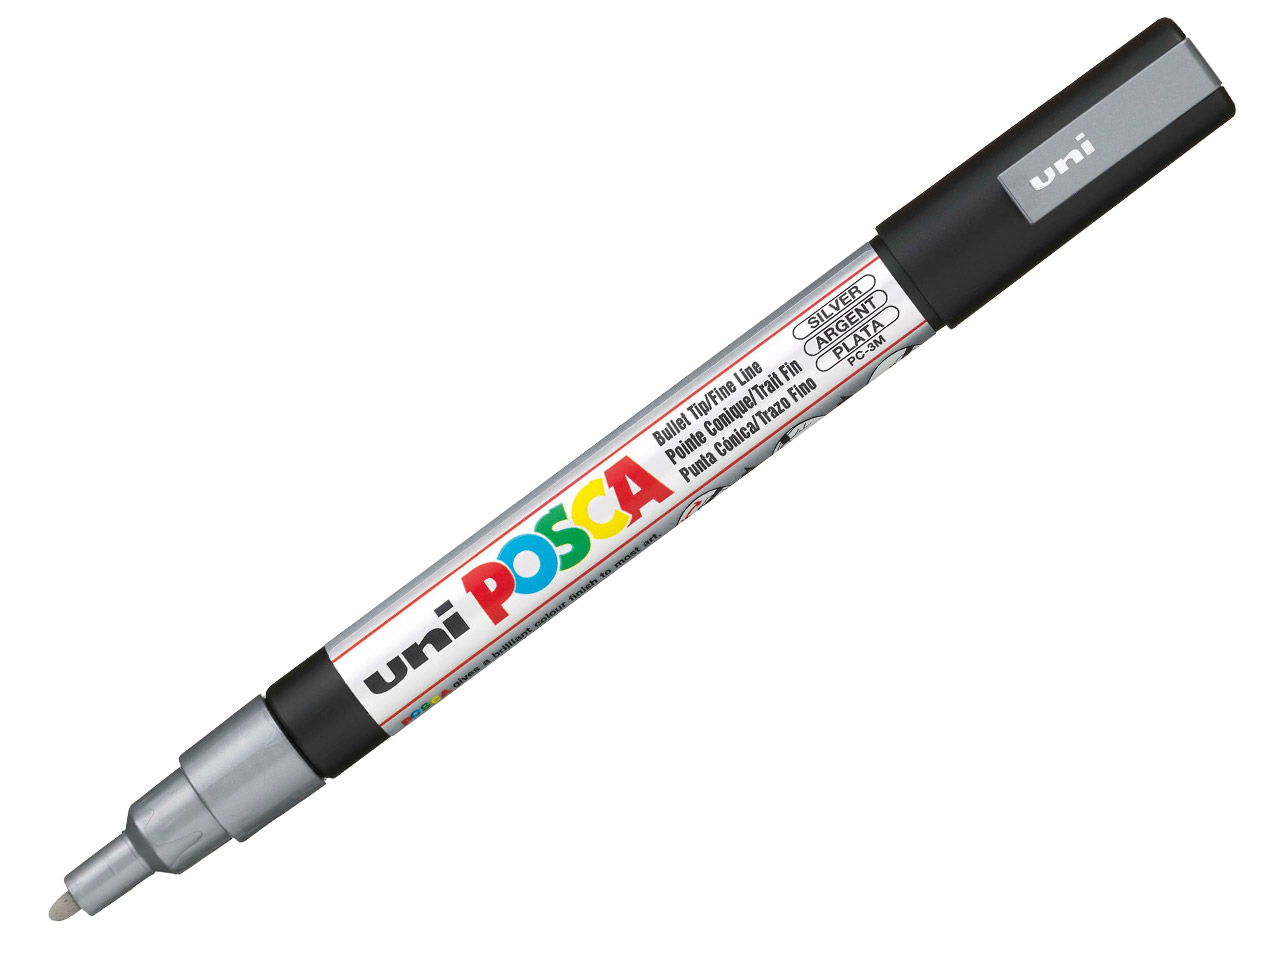 Posca Multi-surface Paint Marker In Silver, 1.3mm Fine Bullet Tip